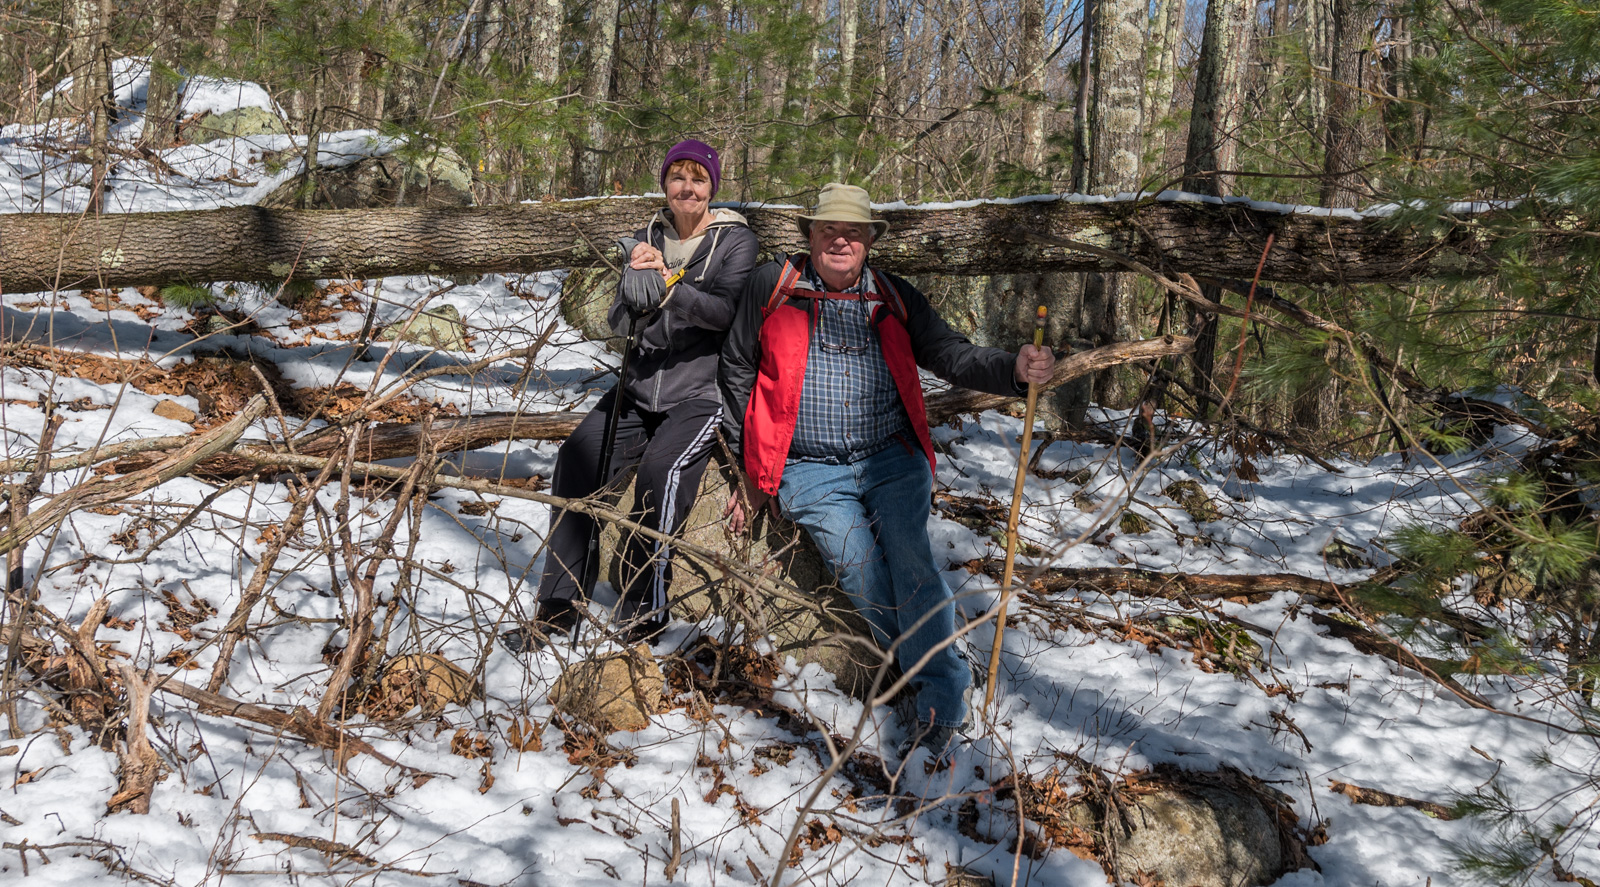 Happy hikers in the Wrentham State Forest